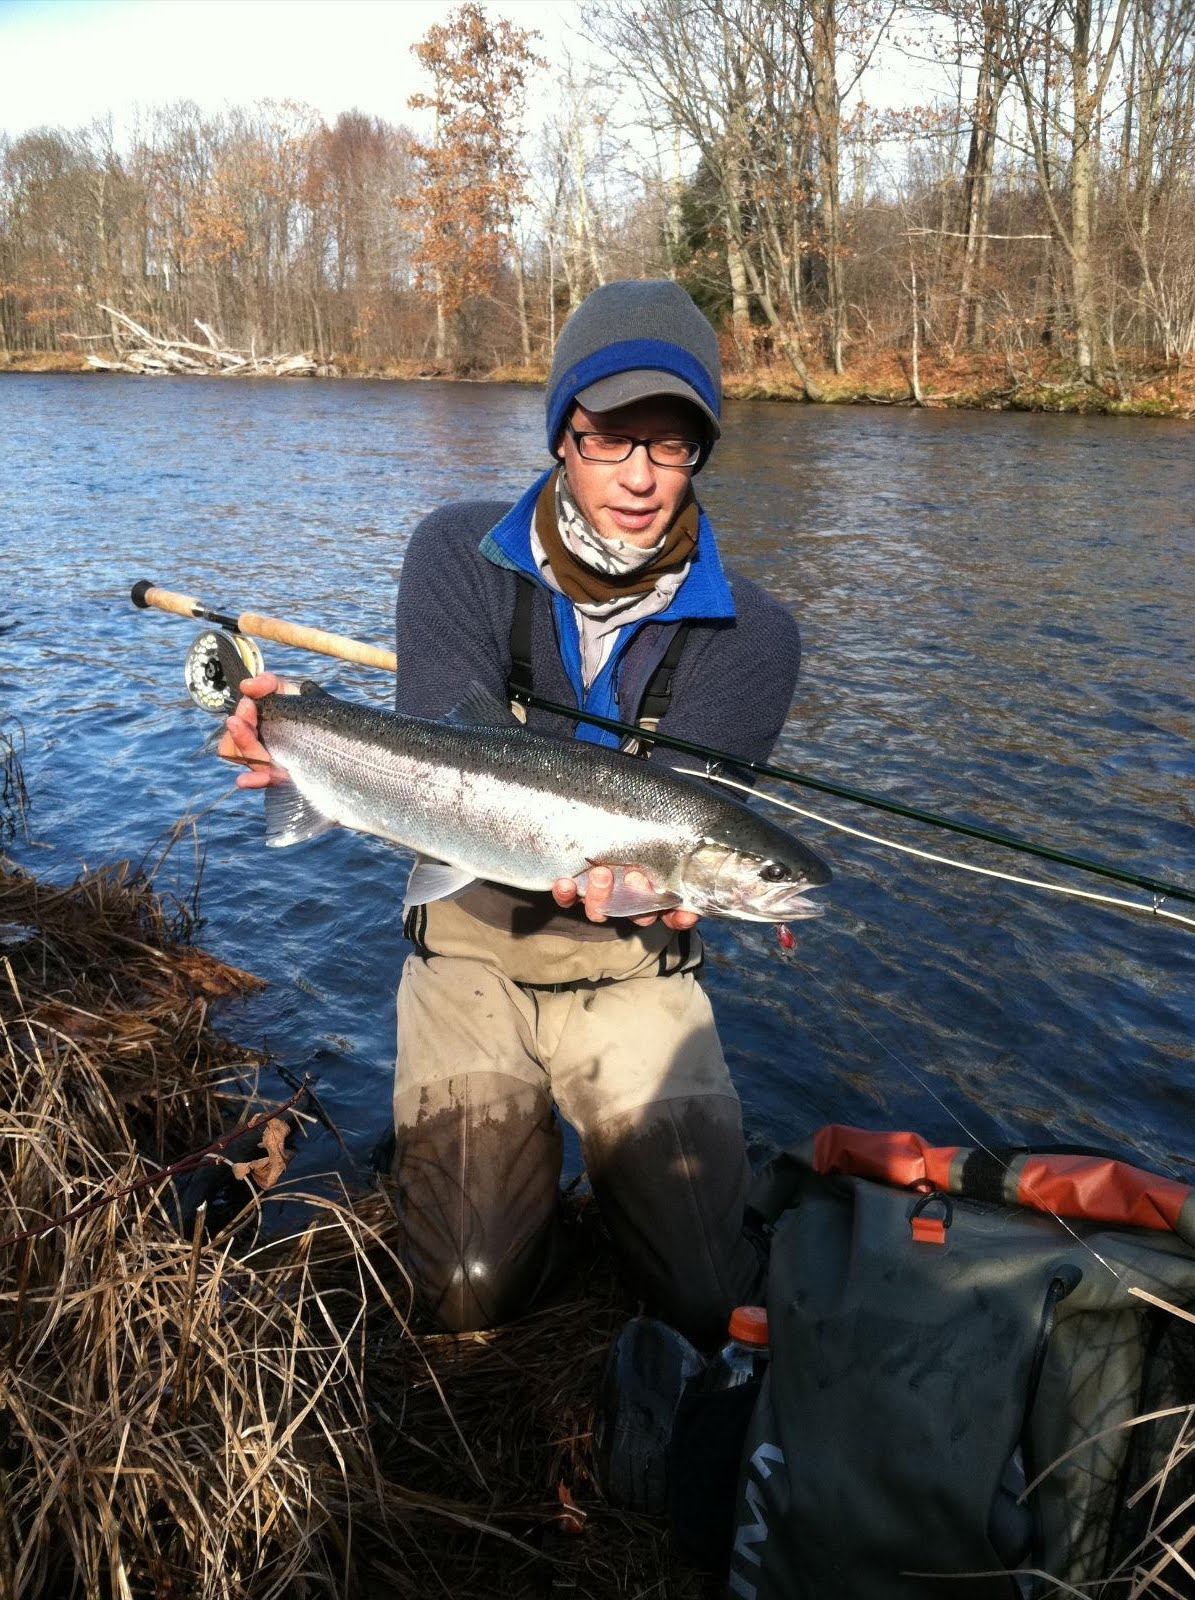 Chagrin river outfitters happy holidays fishing report for Salmon river fishing reports